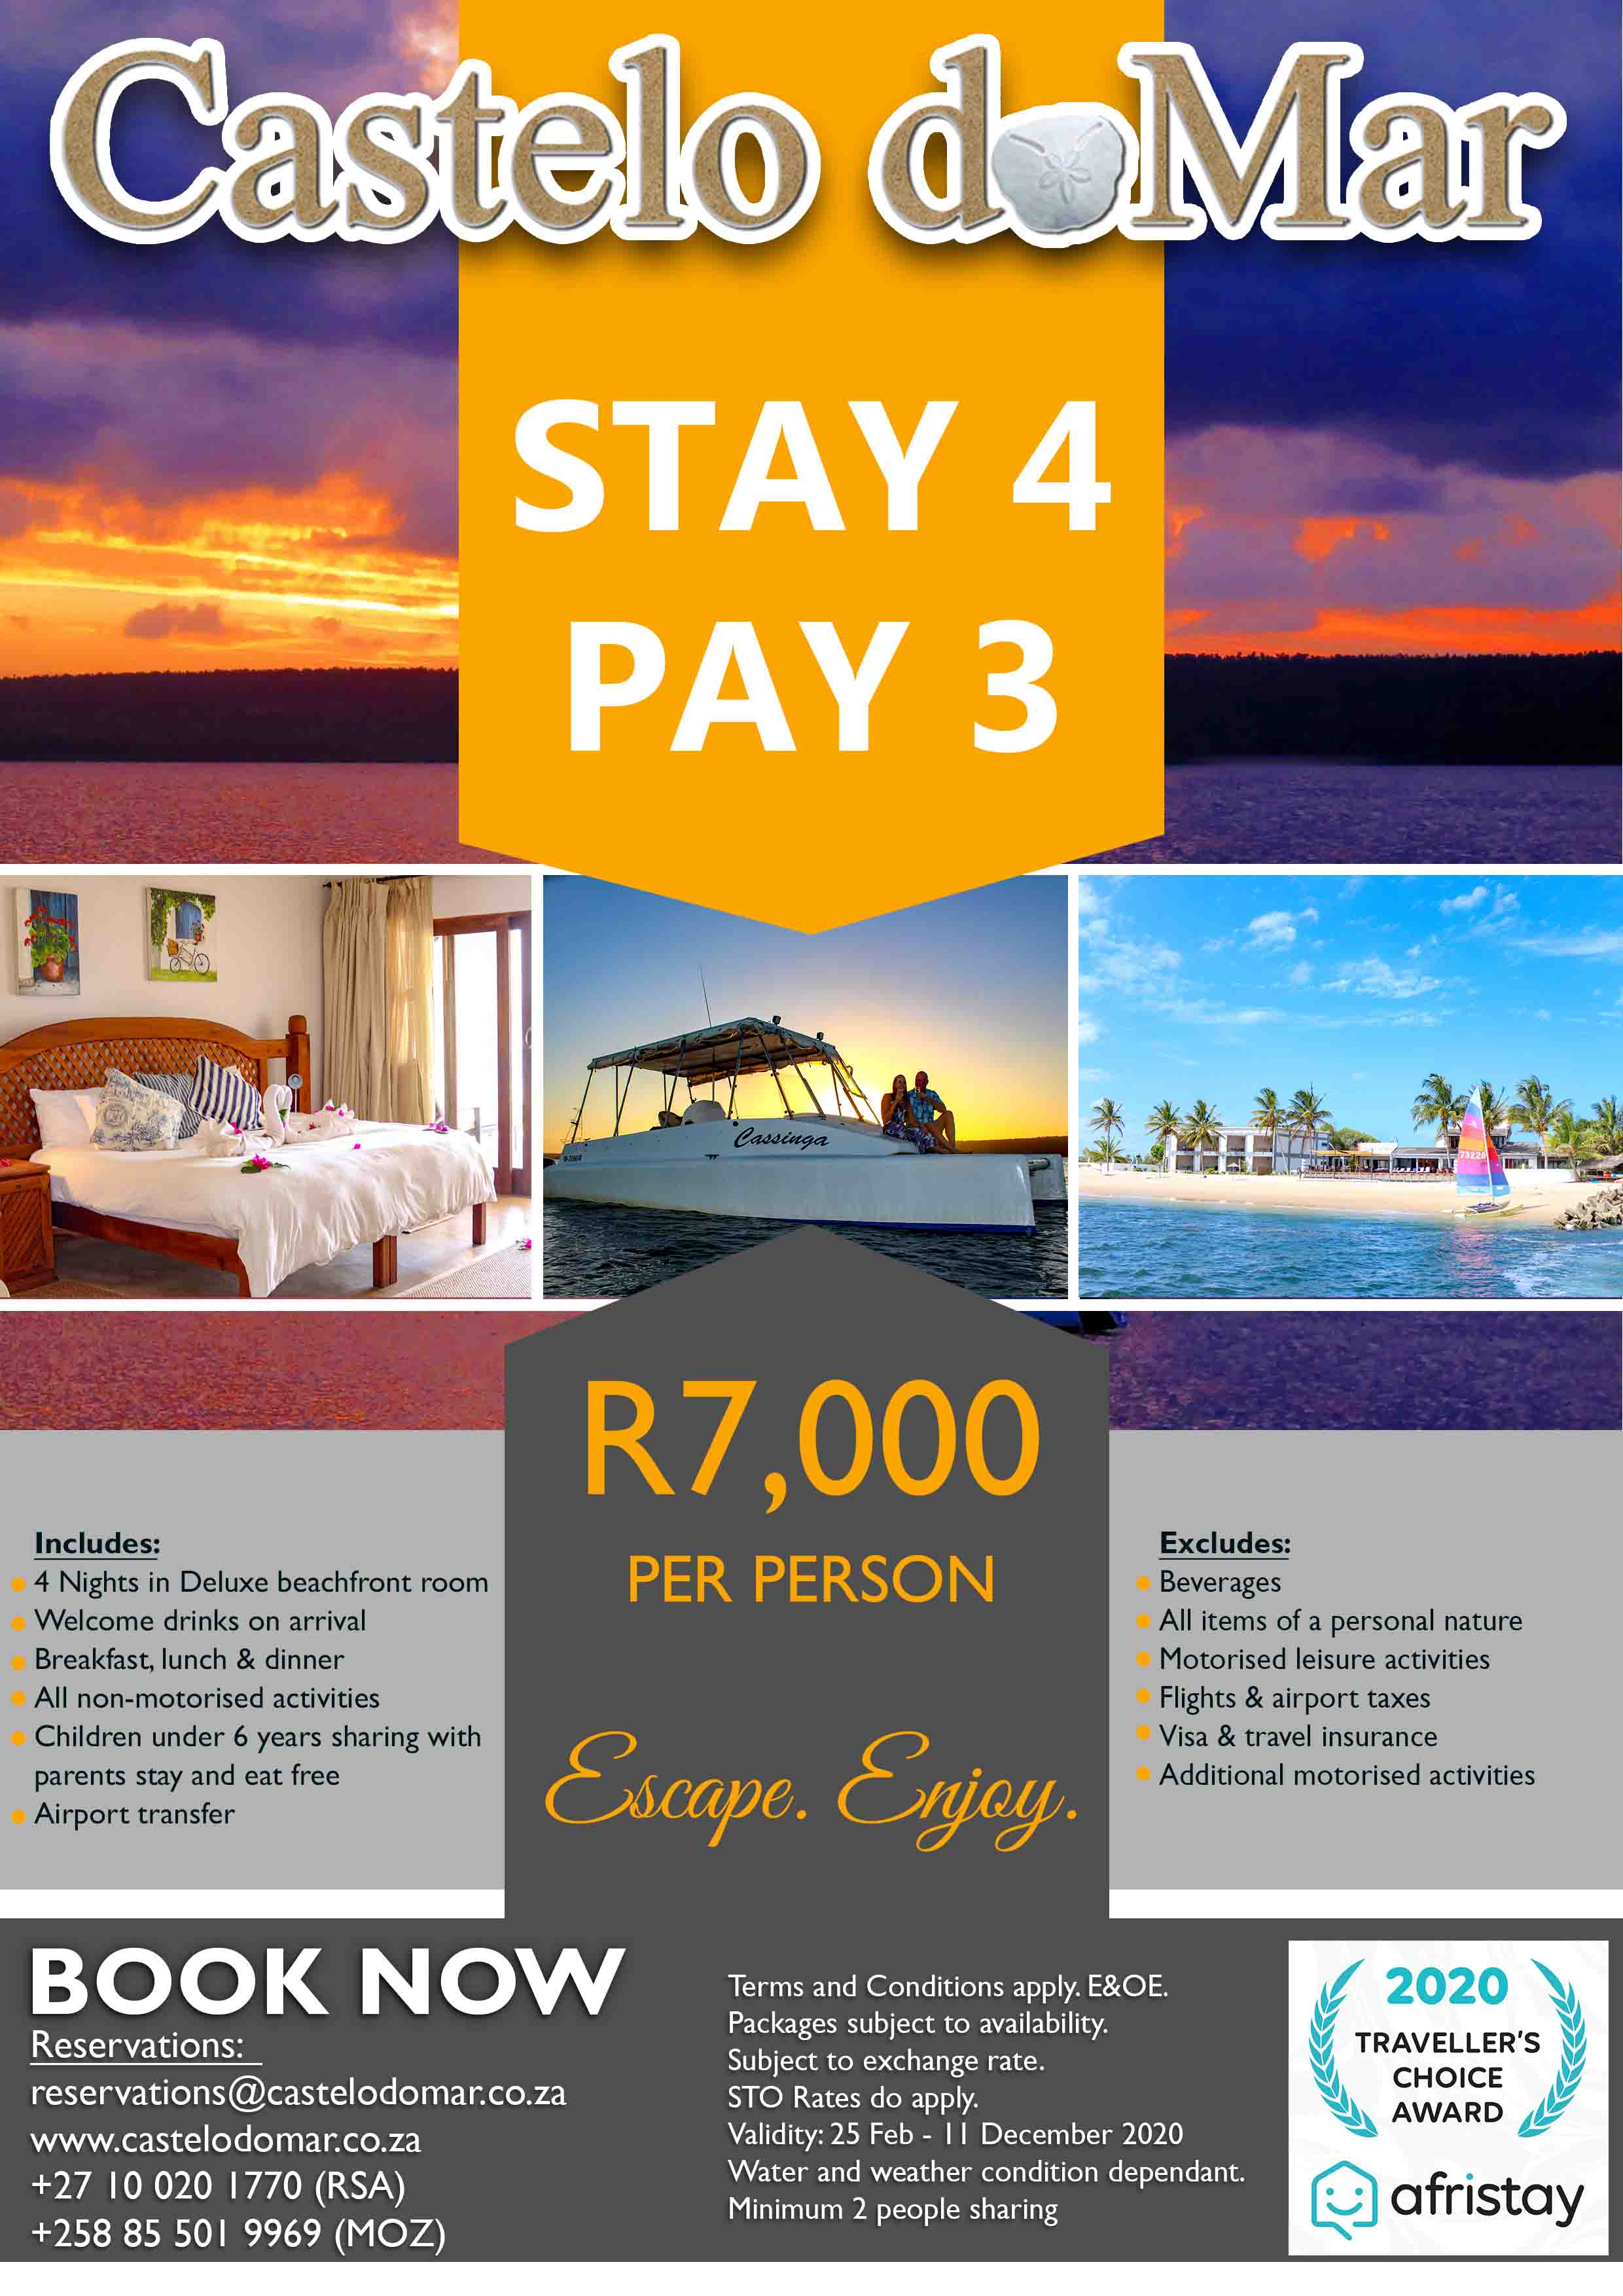 Stay-4-Pay-3-Package_02-03-2020_v3_APPROVED